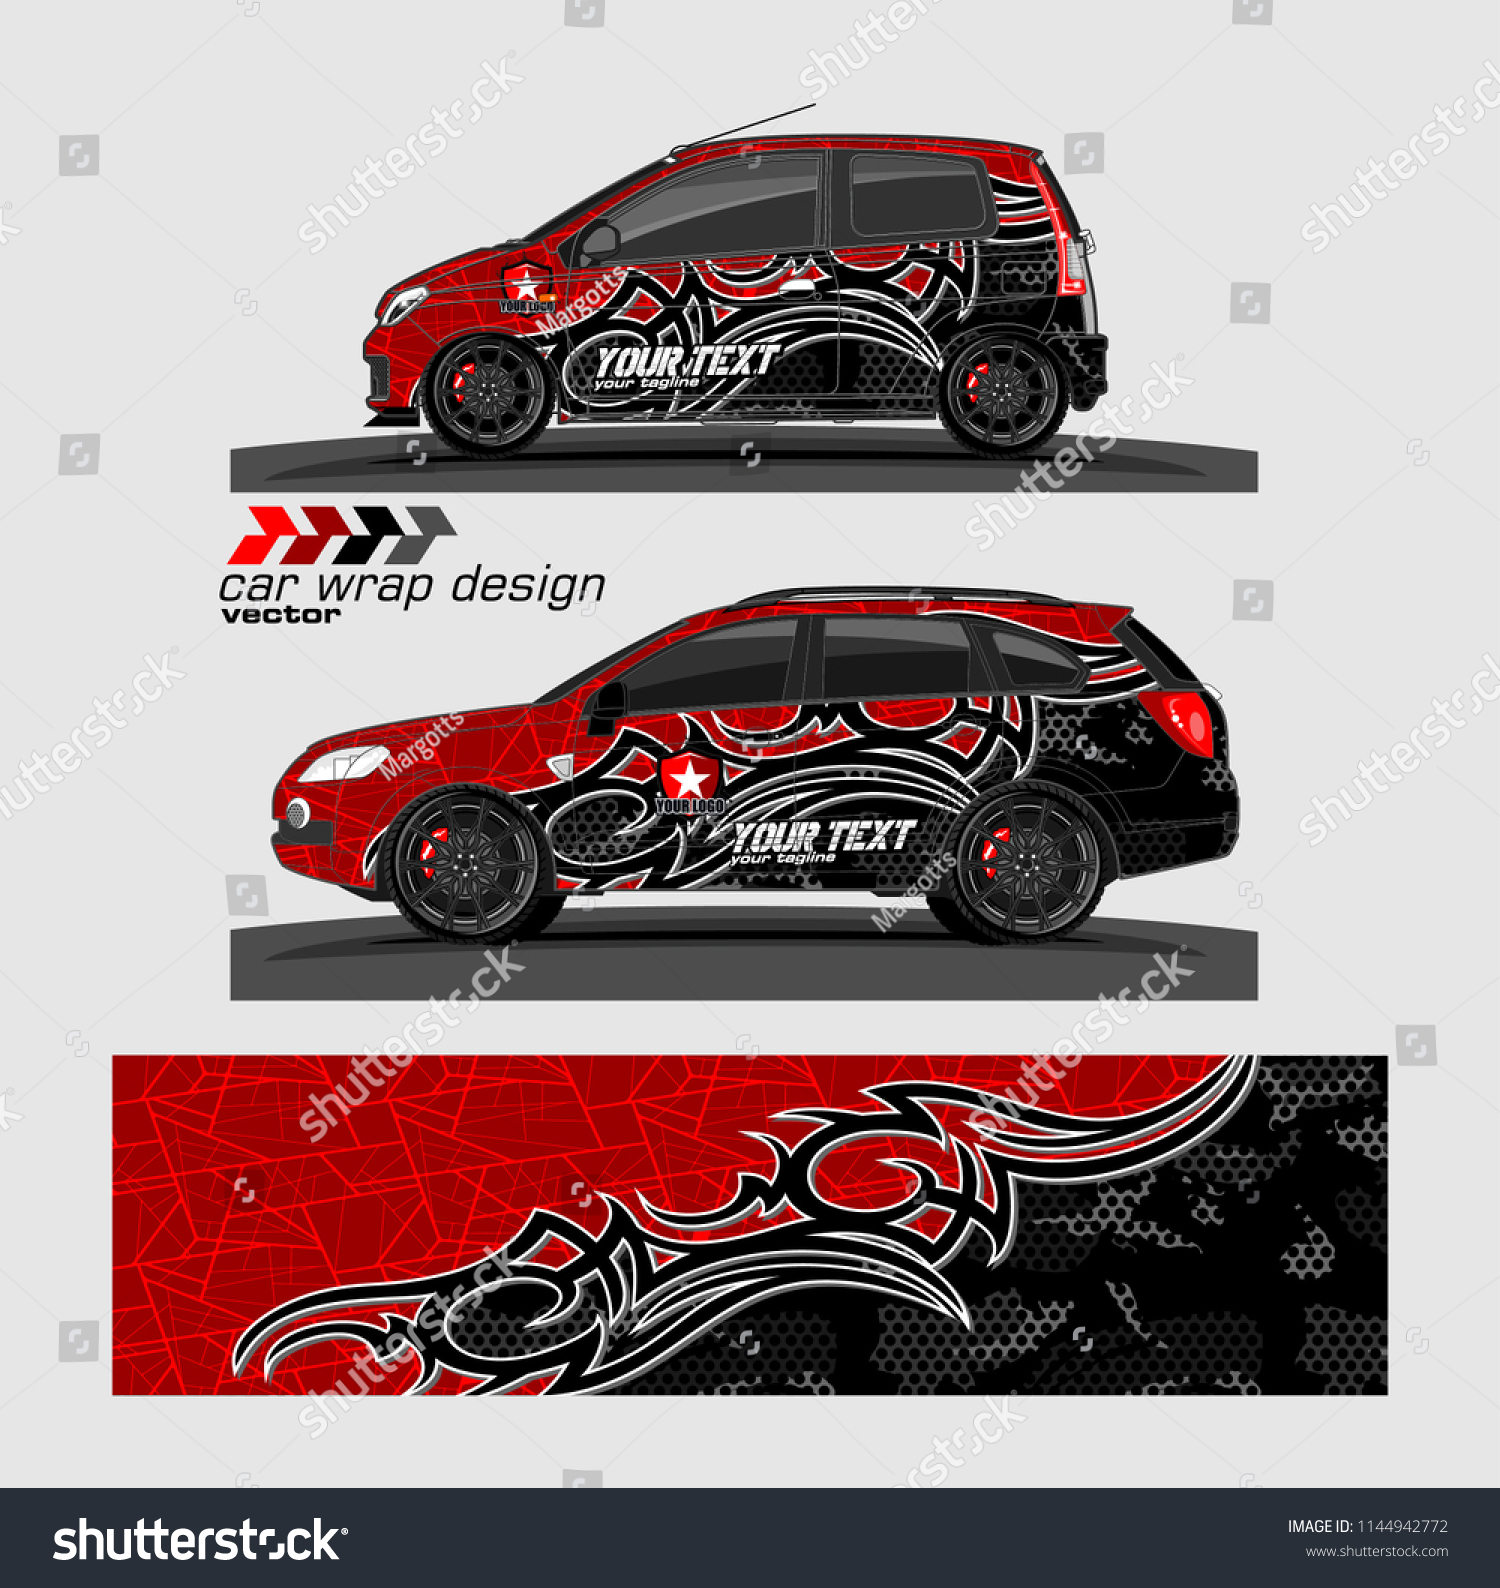 Car wrap designs vector abstract tribal with camouflage for vehicle vinyl sticker